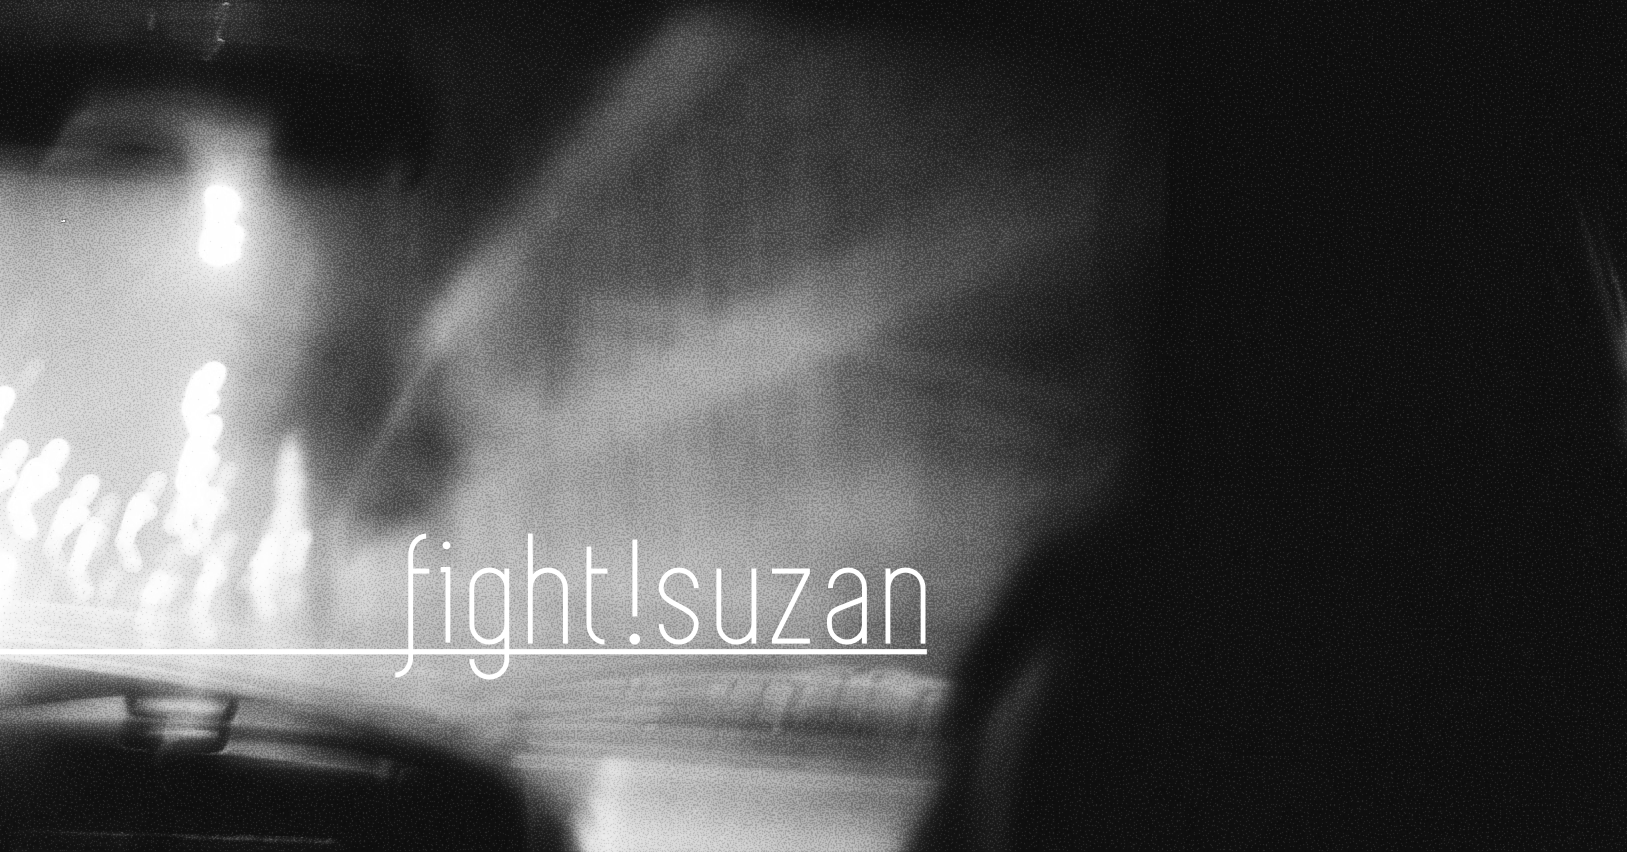 fight!suzan